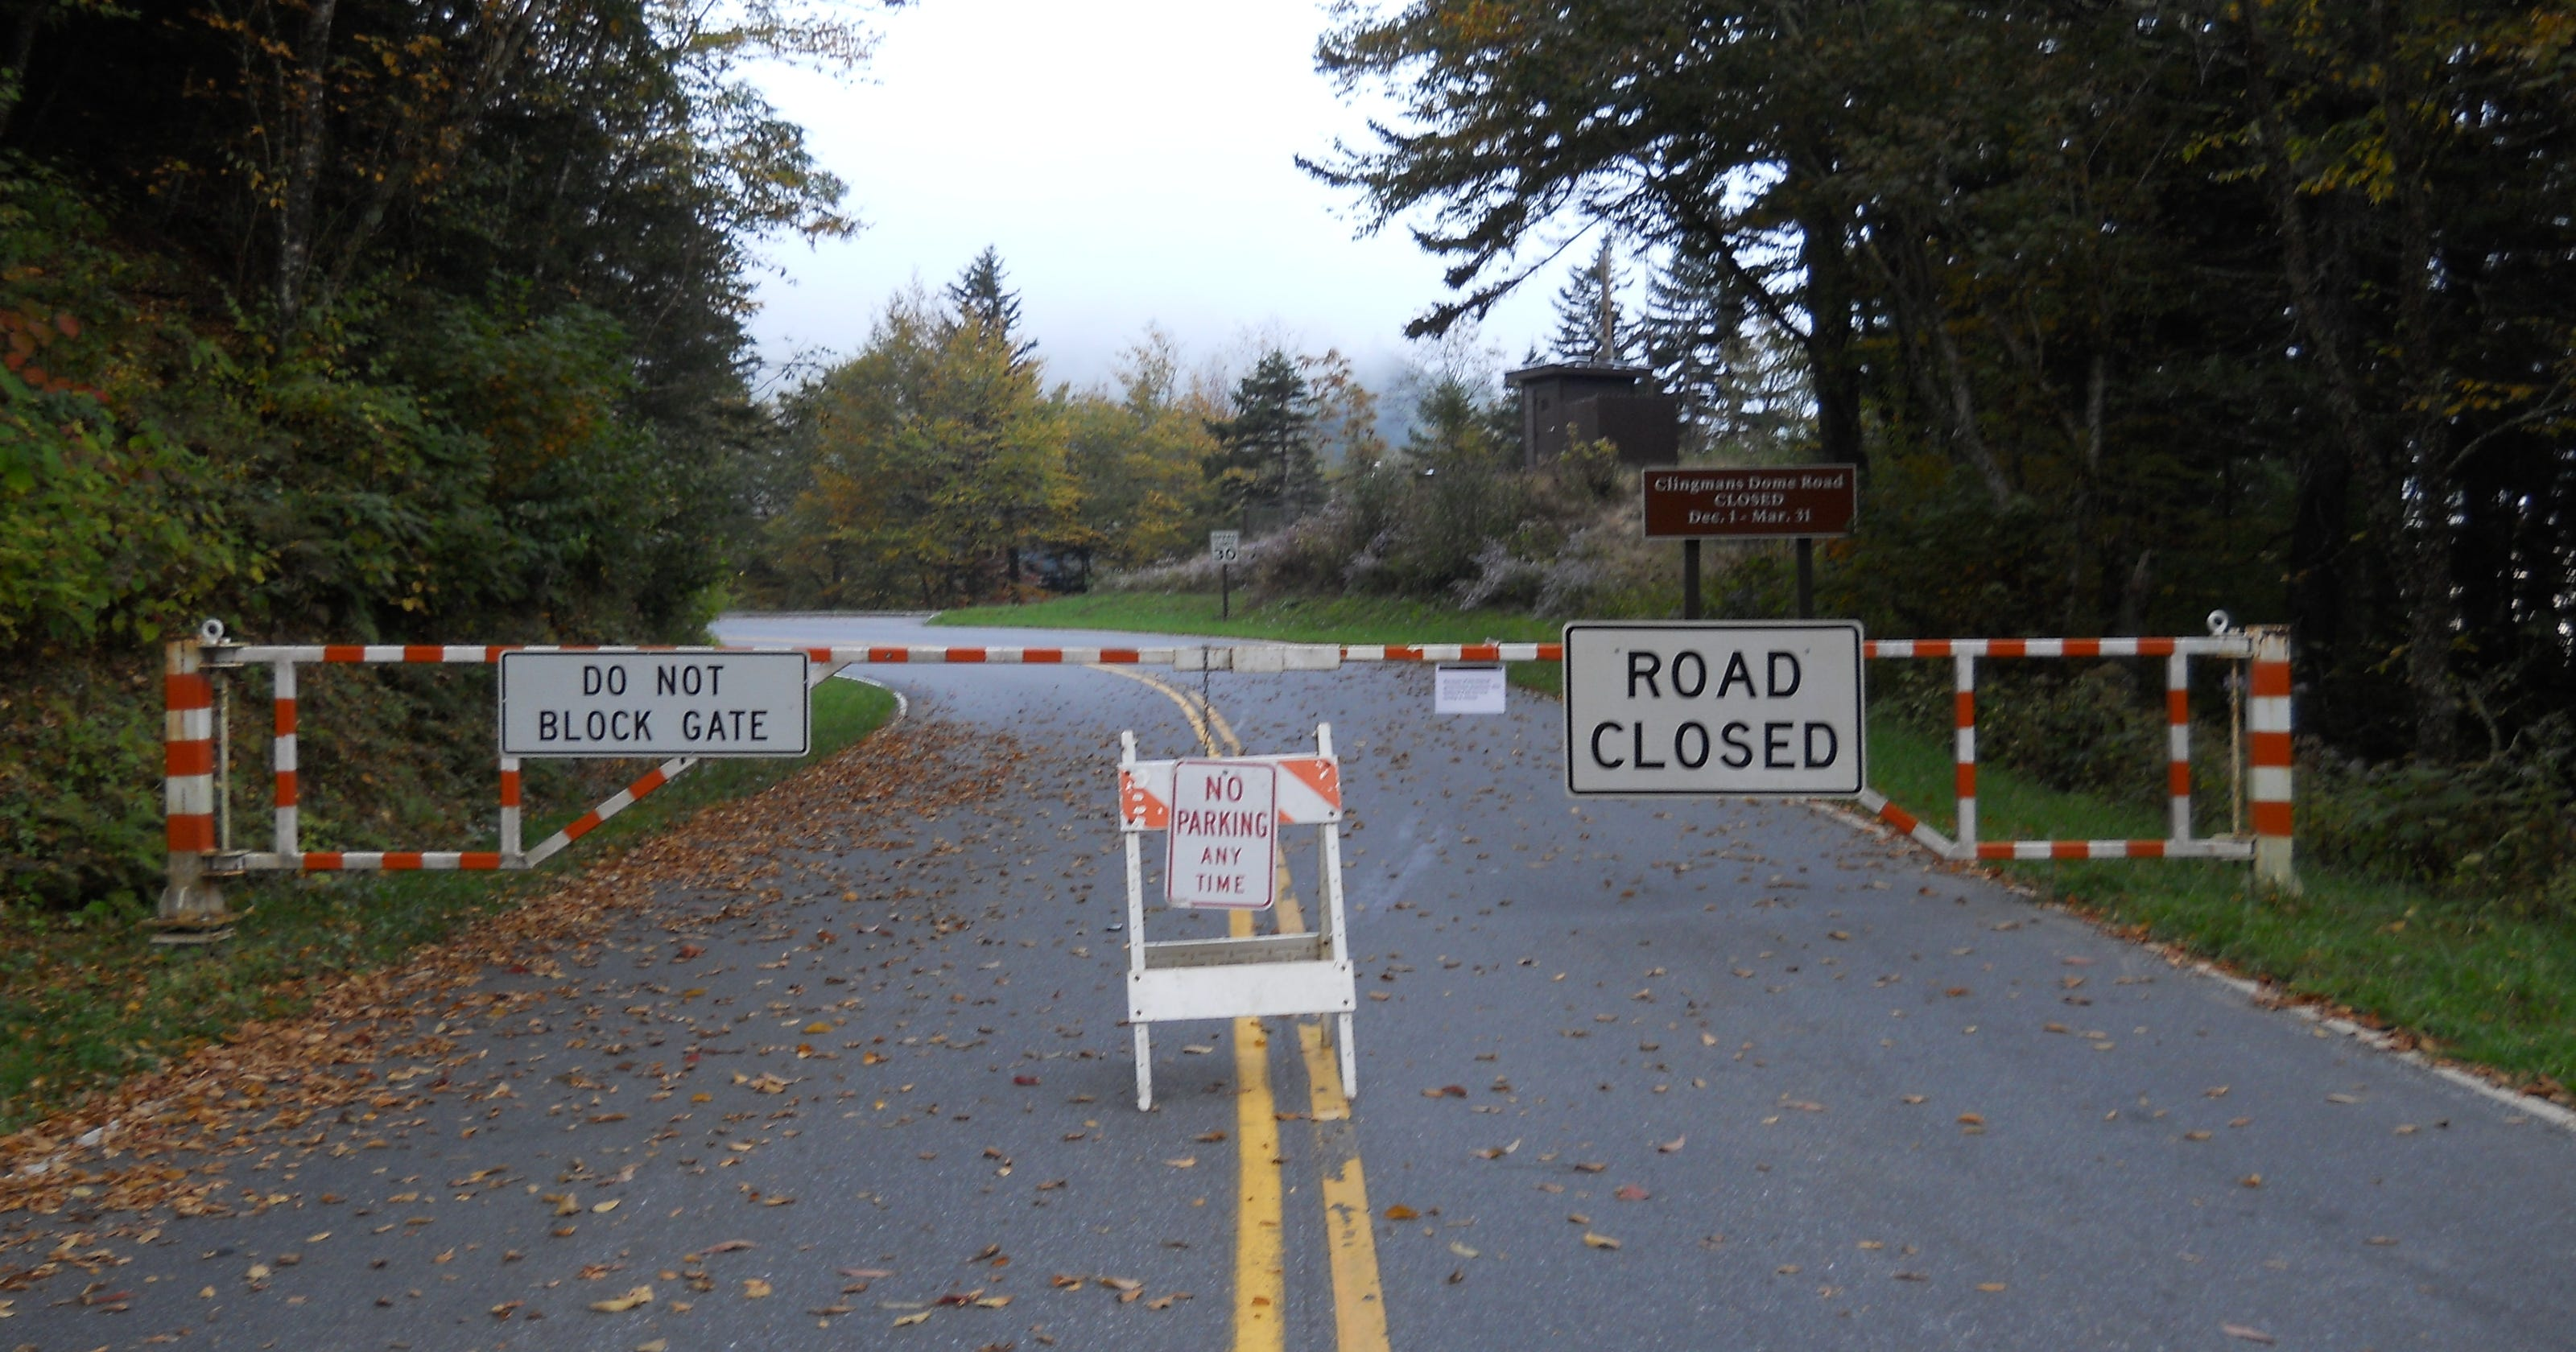 US 441 in Great Smoky Mountains National Park remains closed